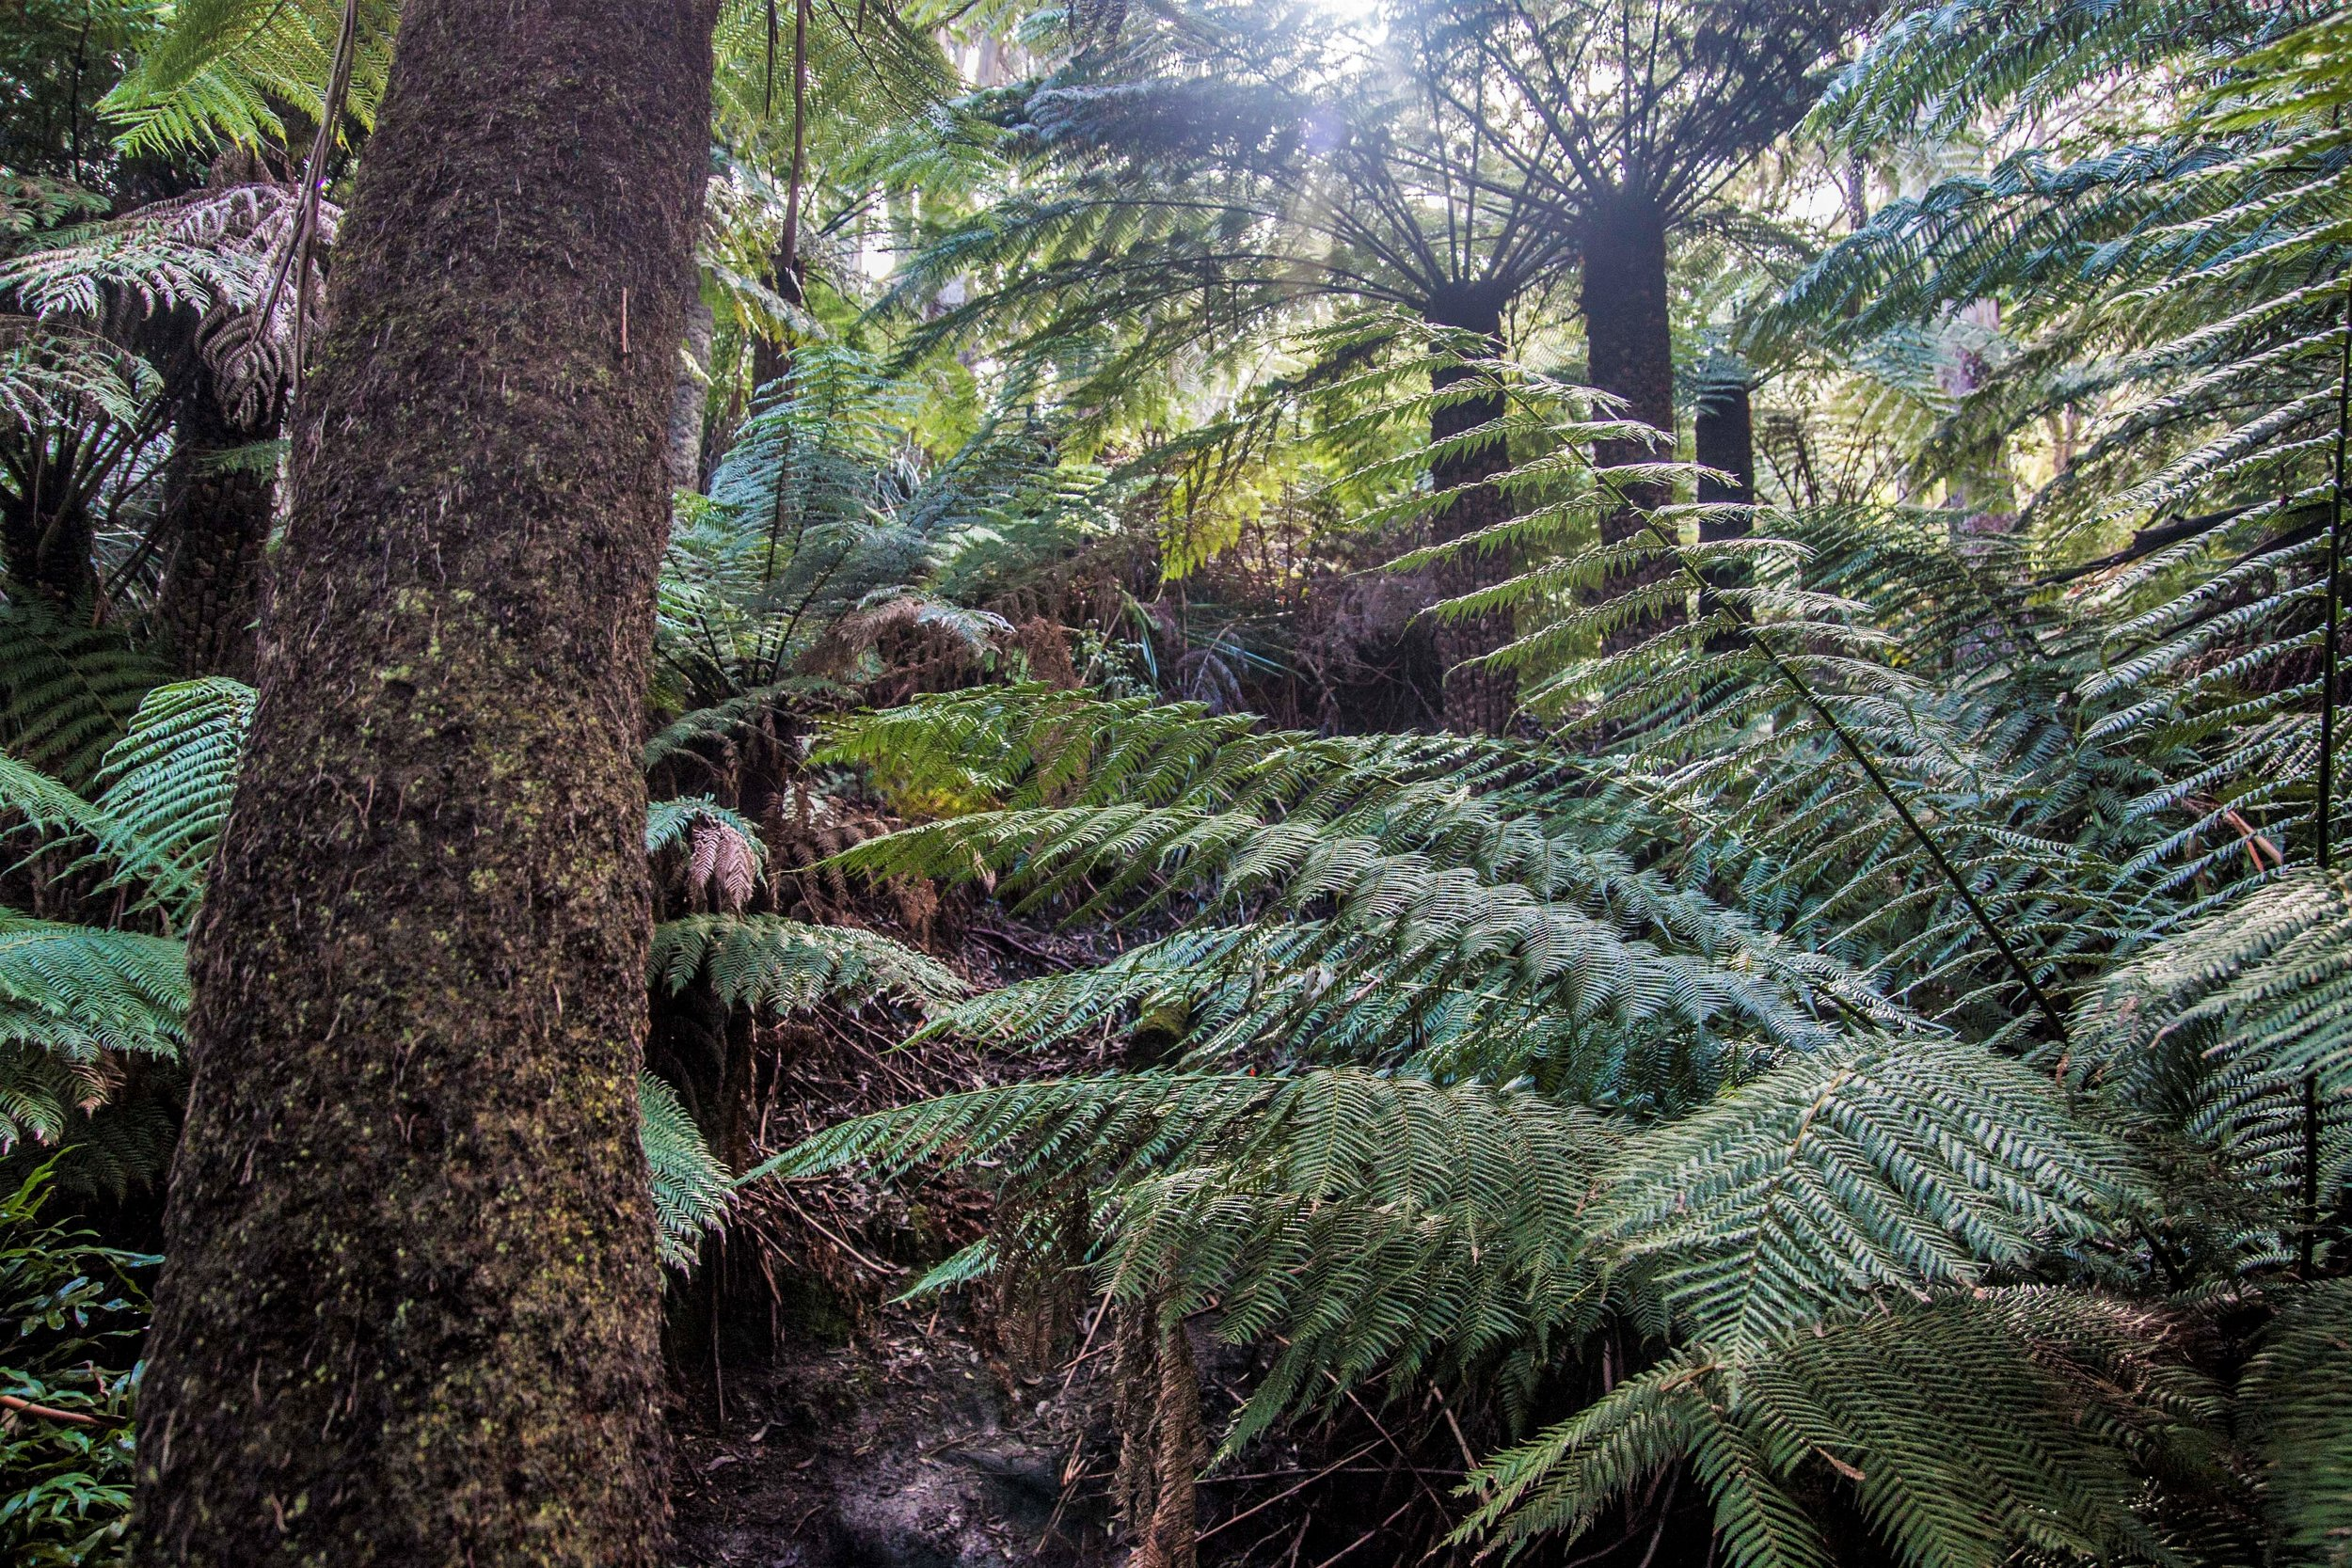 Sun peeking through Dicksonia and Cyathea tree ferns in a lush rainforest gully in Strzelecki National Park on Flinders Island, Tasmania